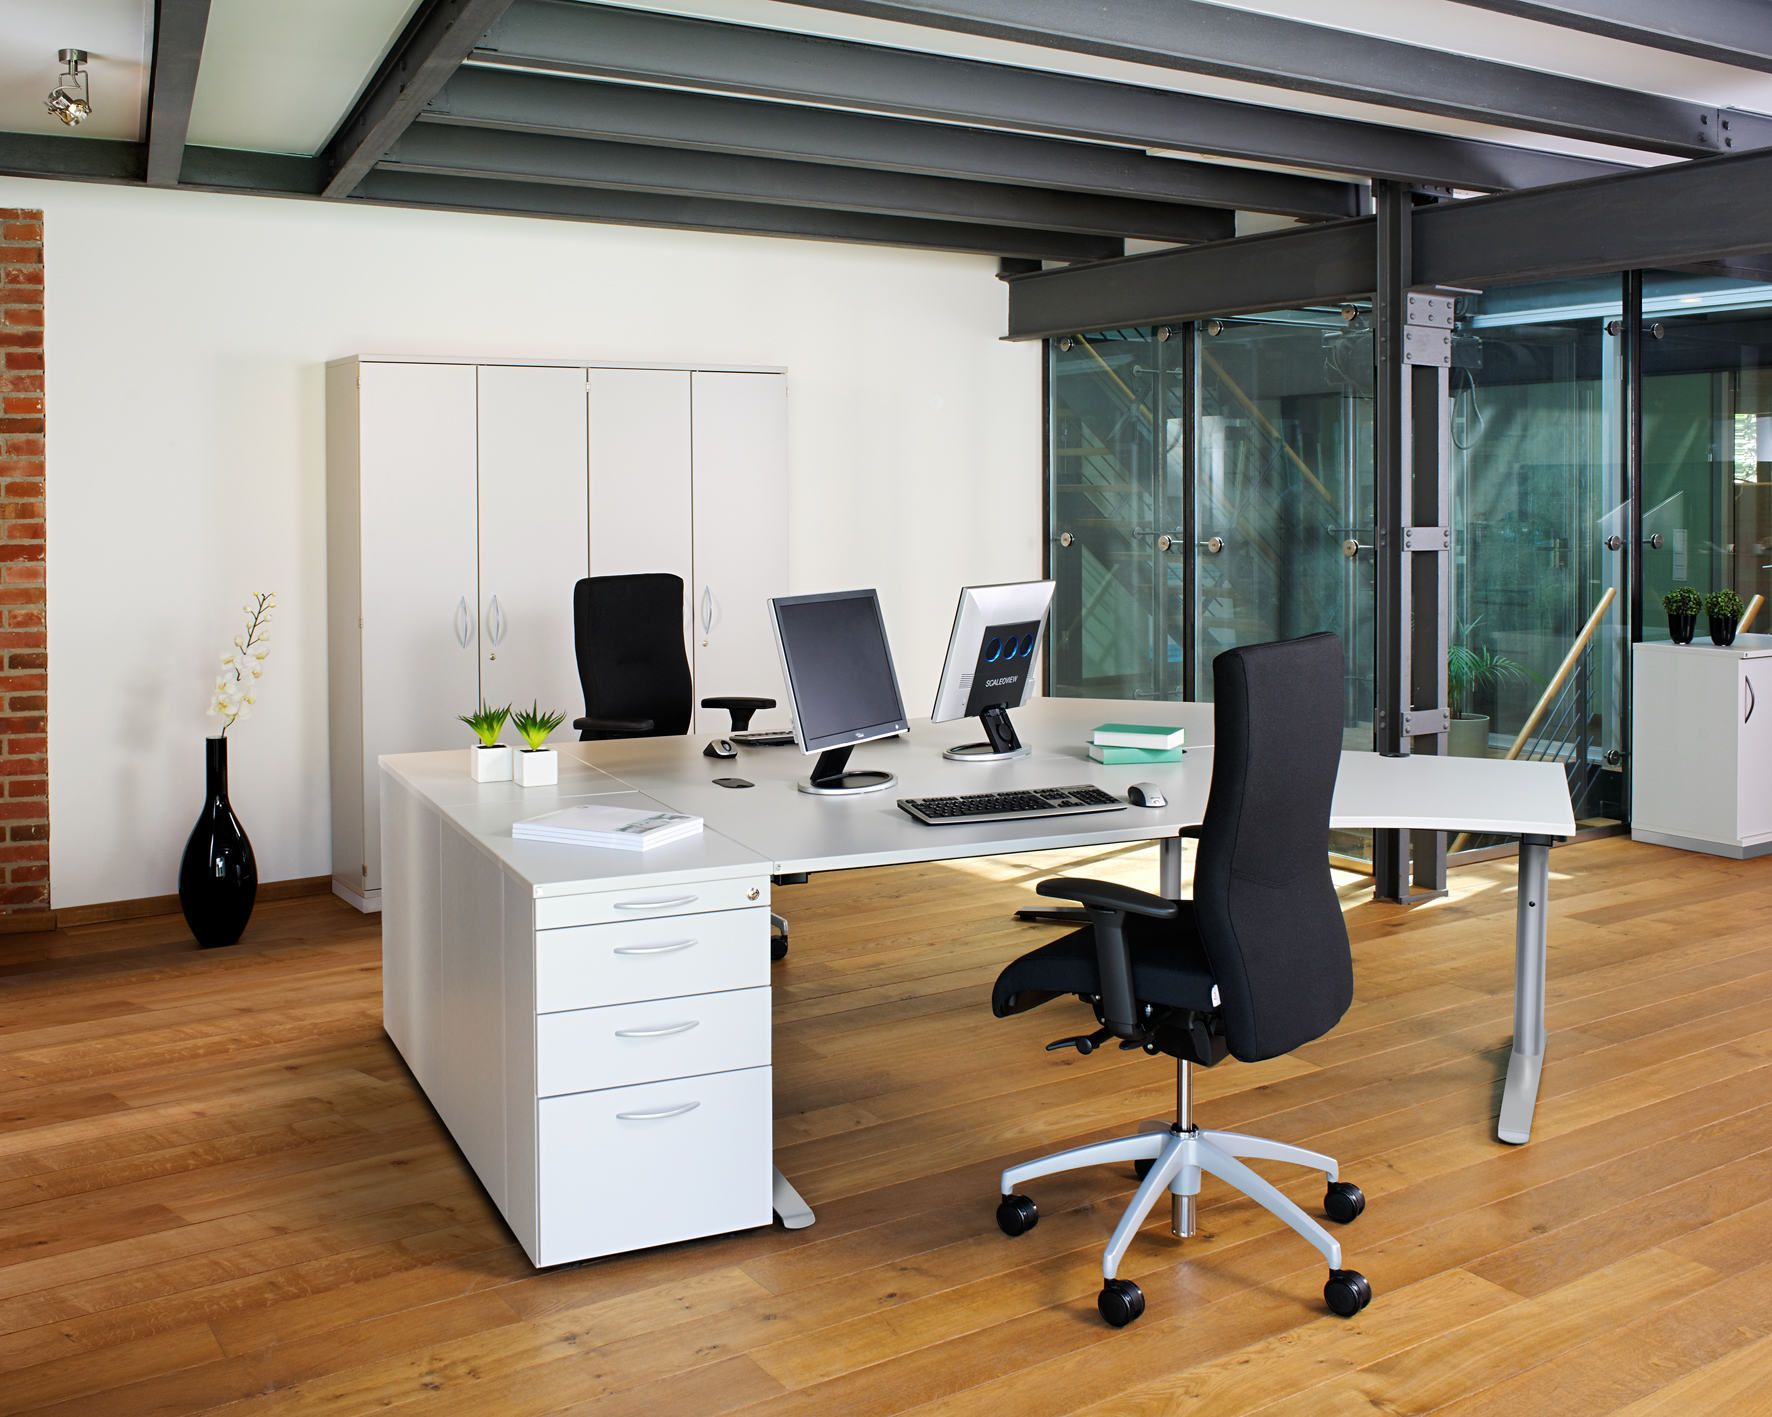 Stylishly Cool Office Furniture Designs for Awesome